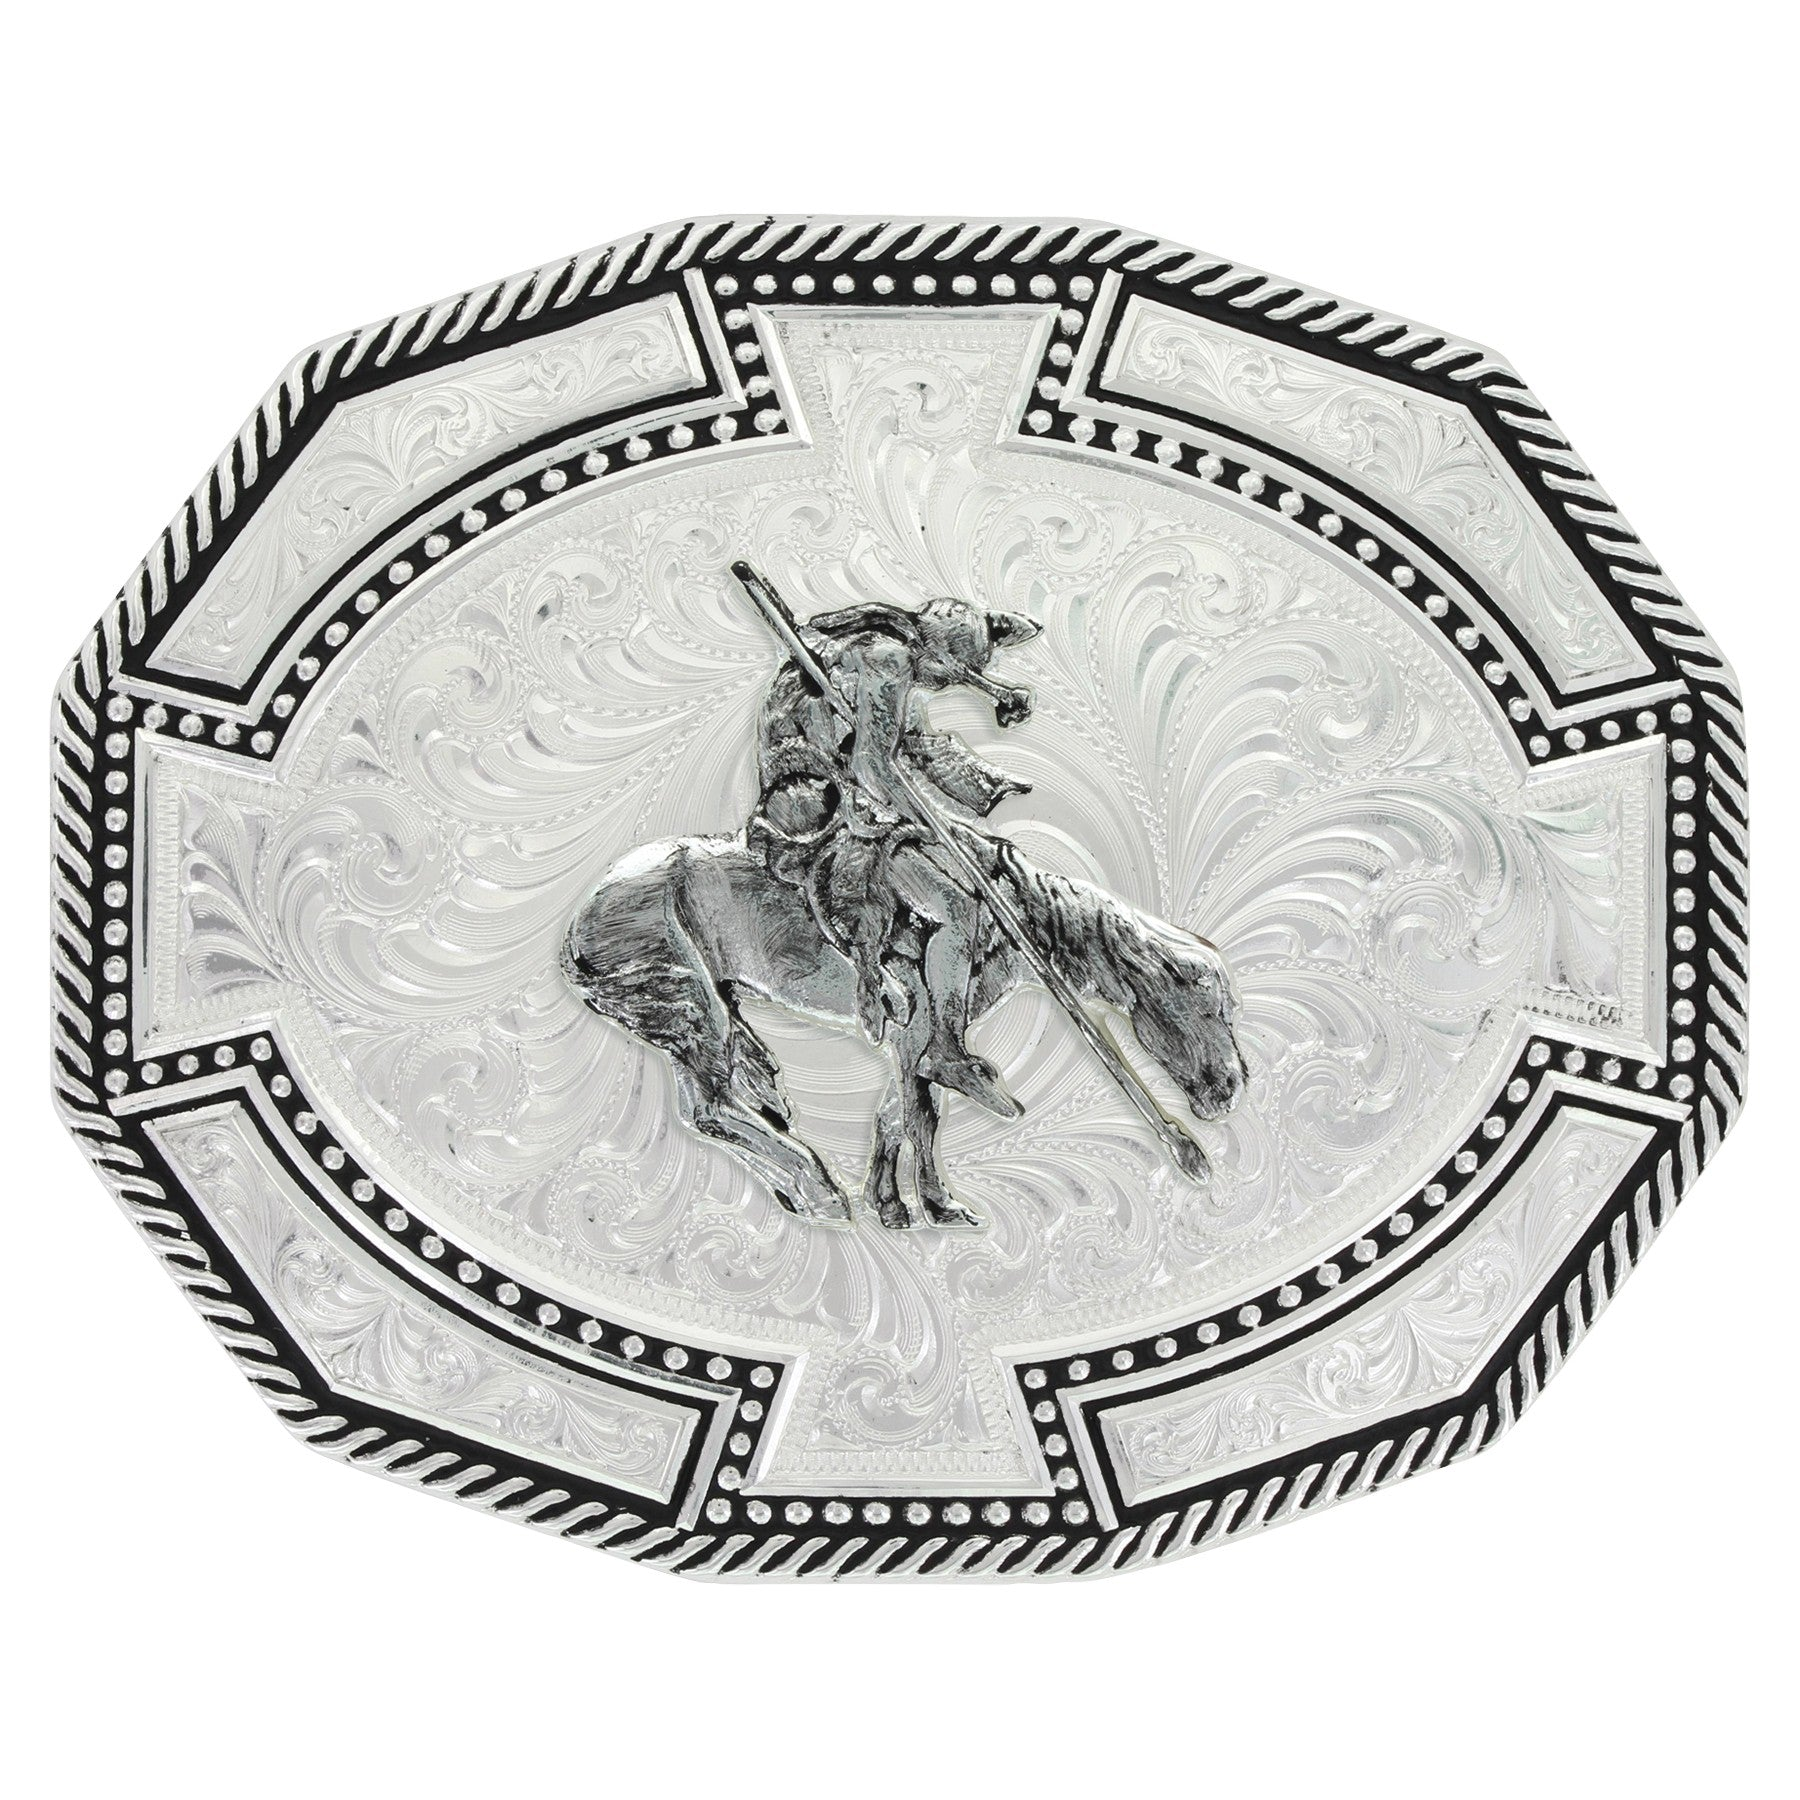 Montana Silversmith's Bordertown Buckle with End of Trail